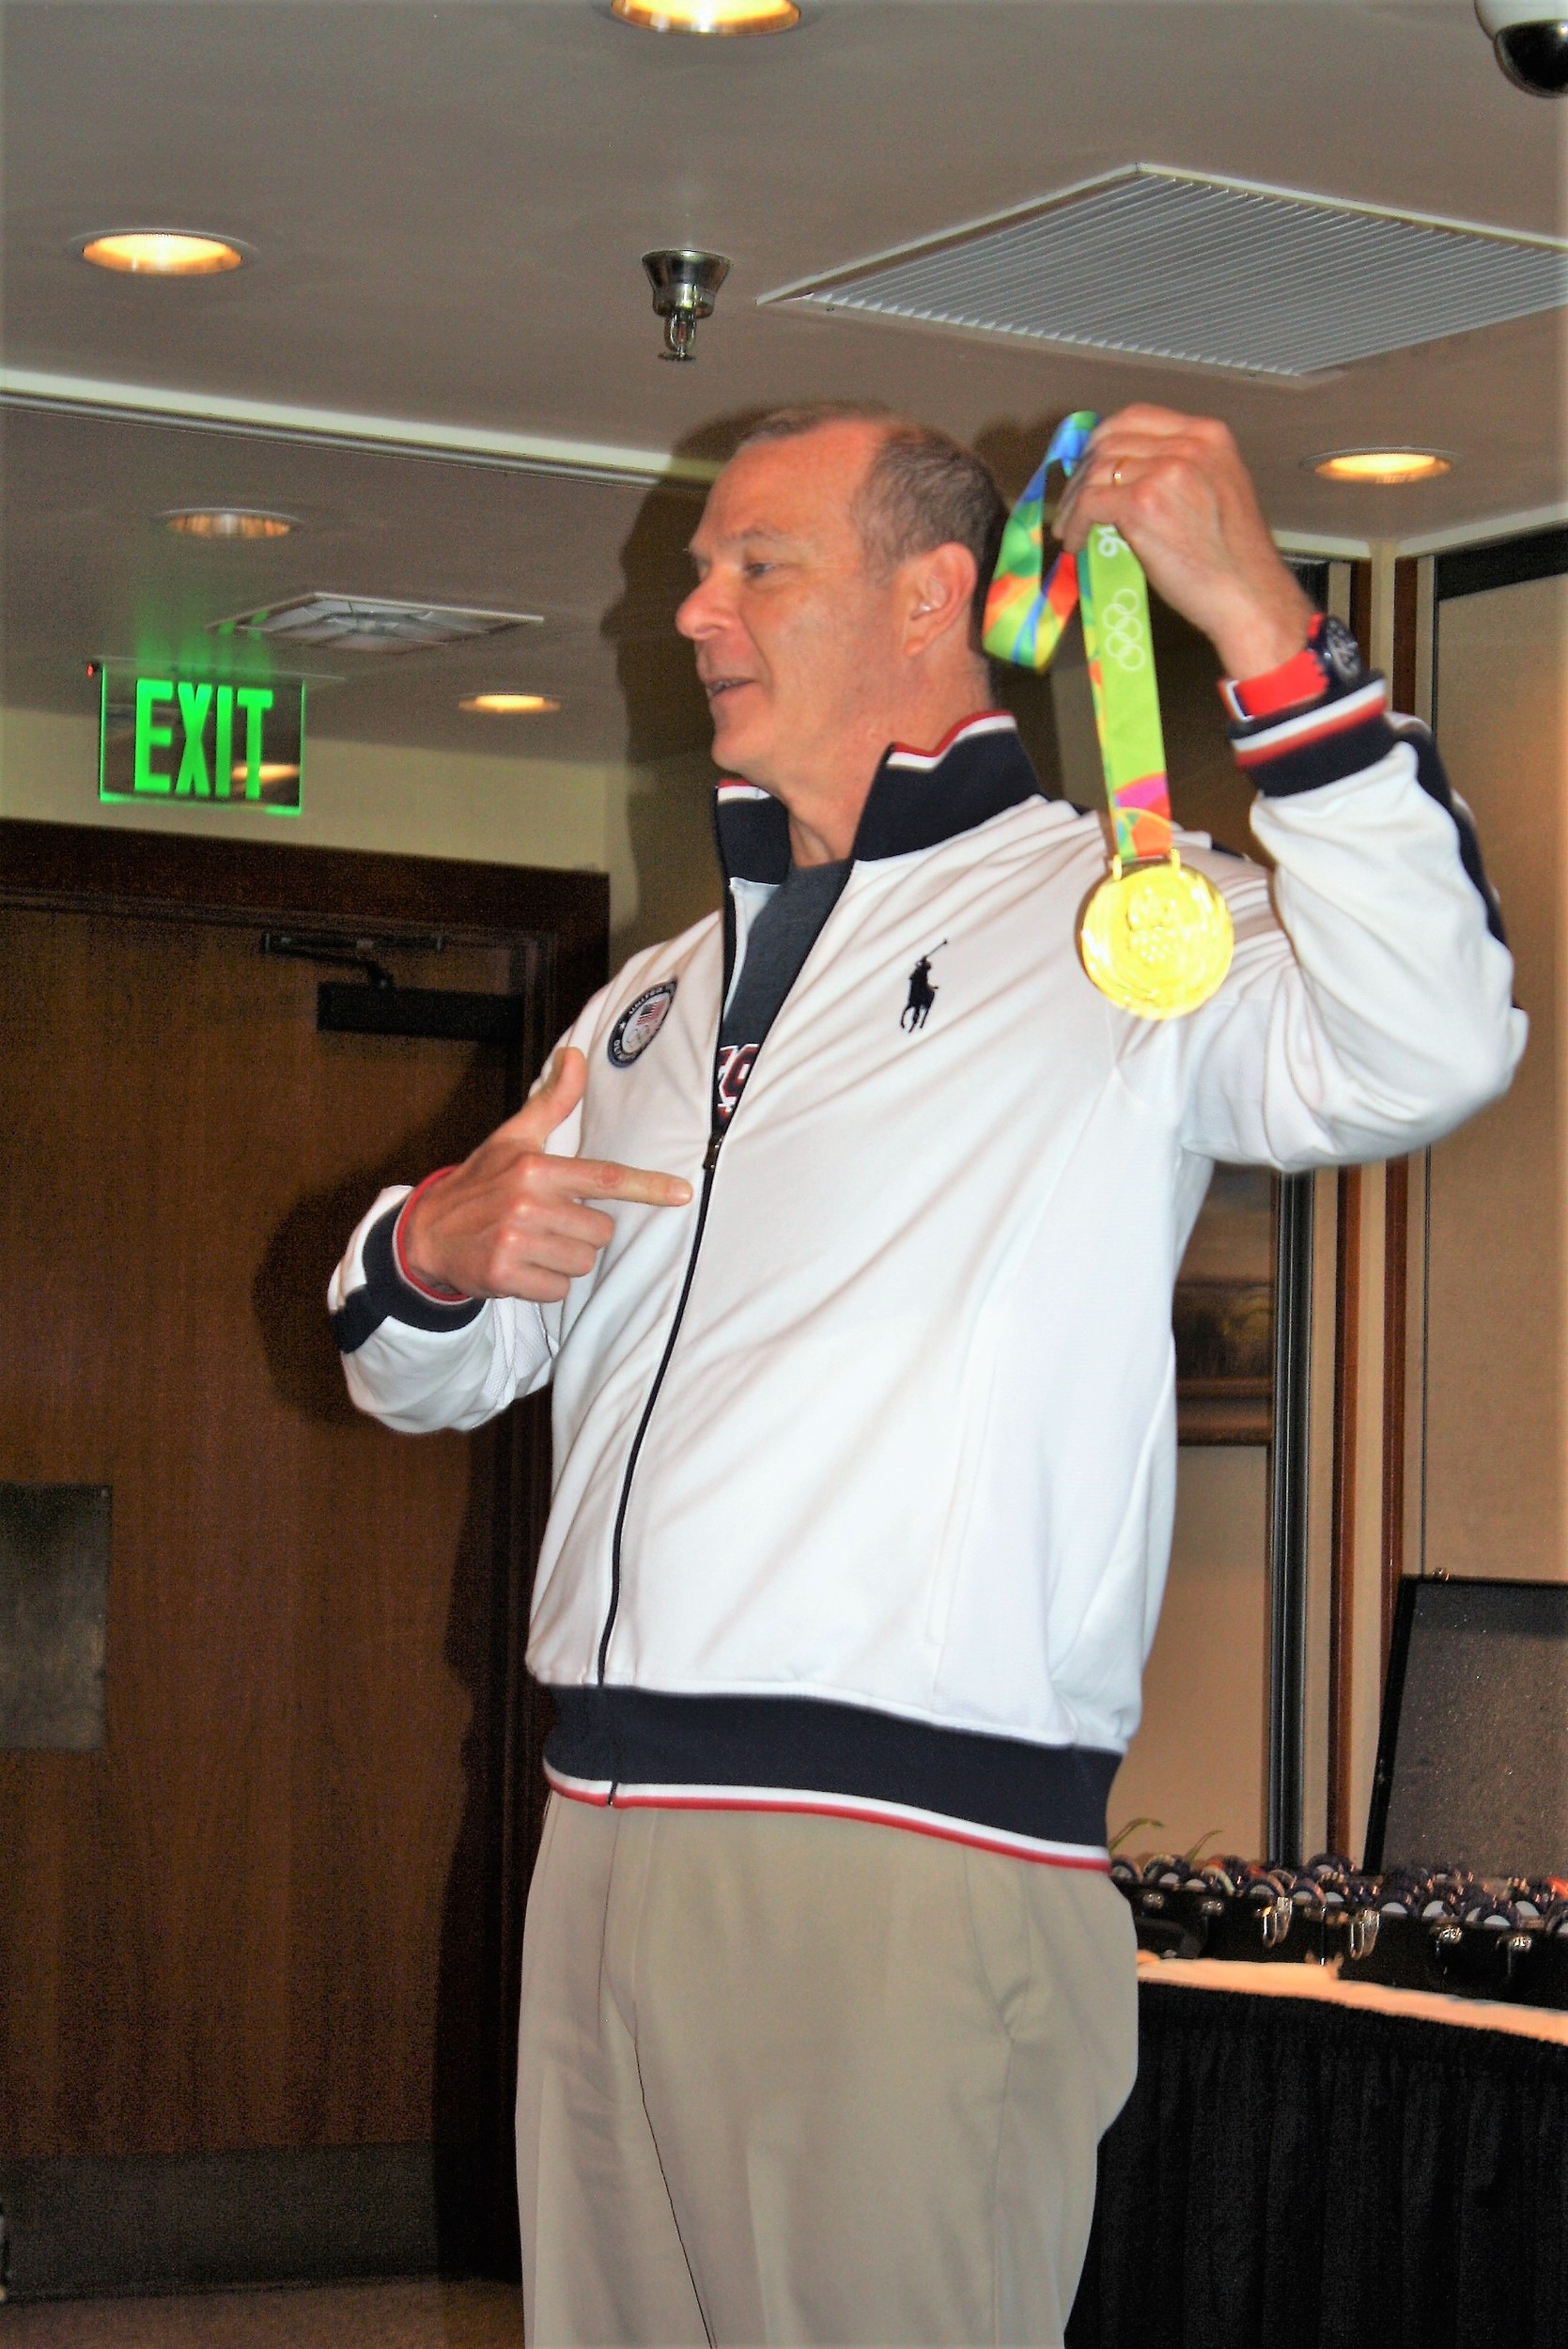 Patrick Murphy displays one of the three gold medals his son won at the 2016 Summer Olympics in Rio.